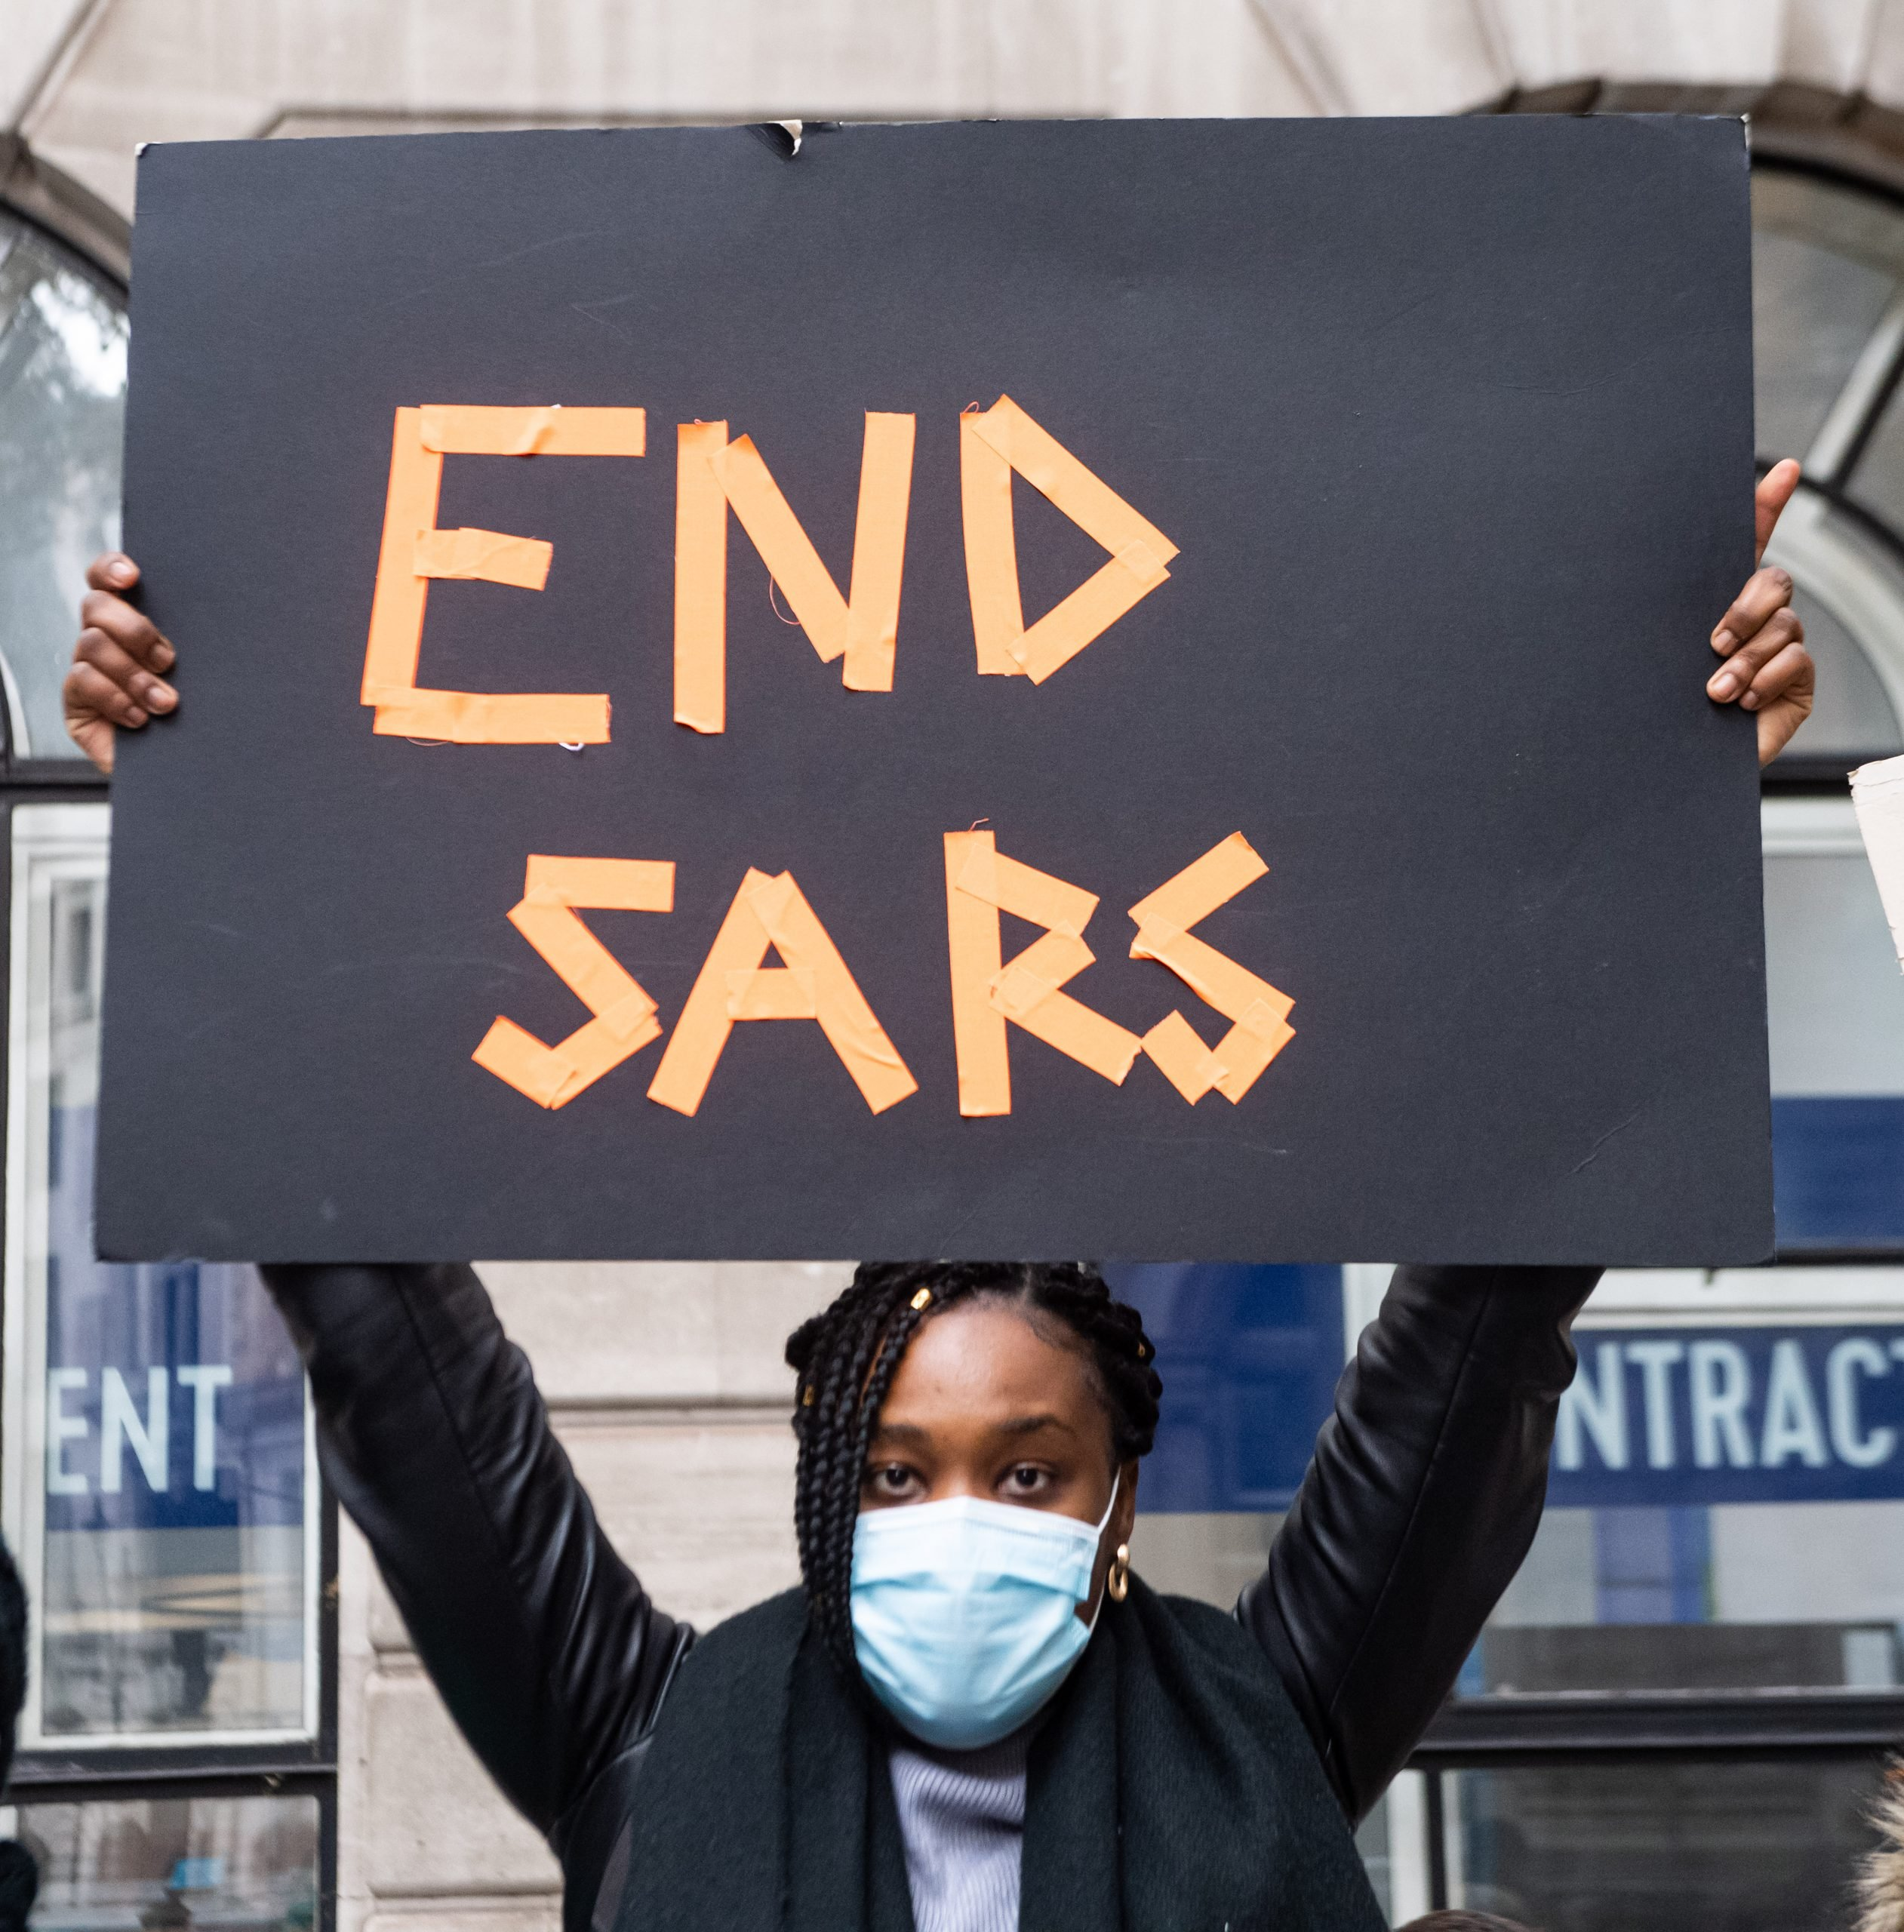 #EndSARS protests against police brutality continue in Nigeria